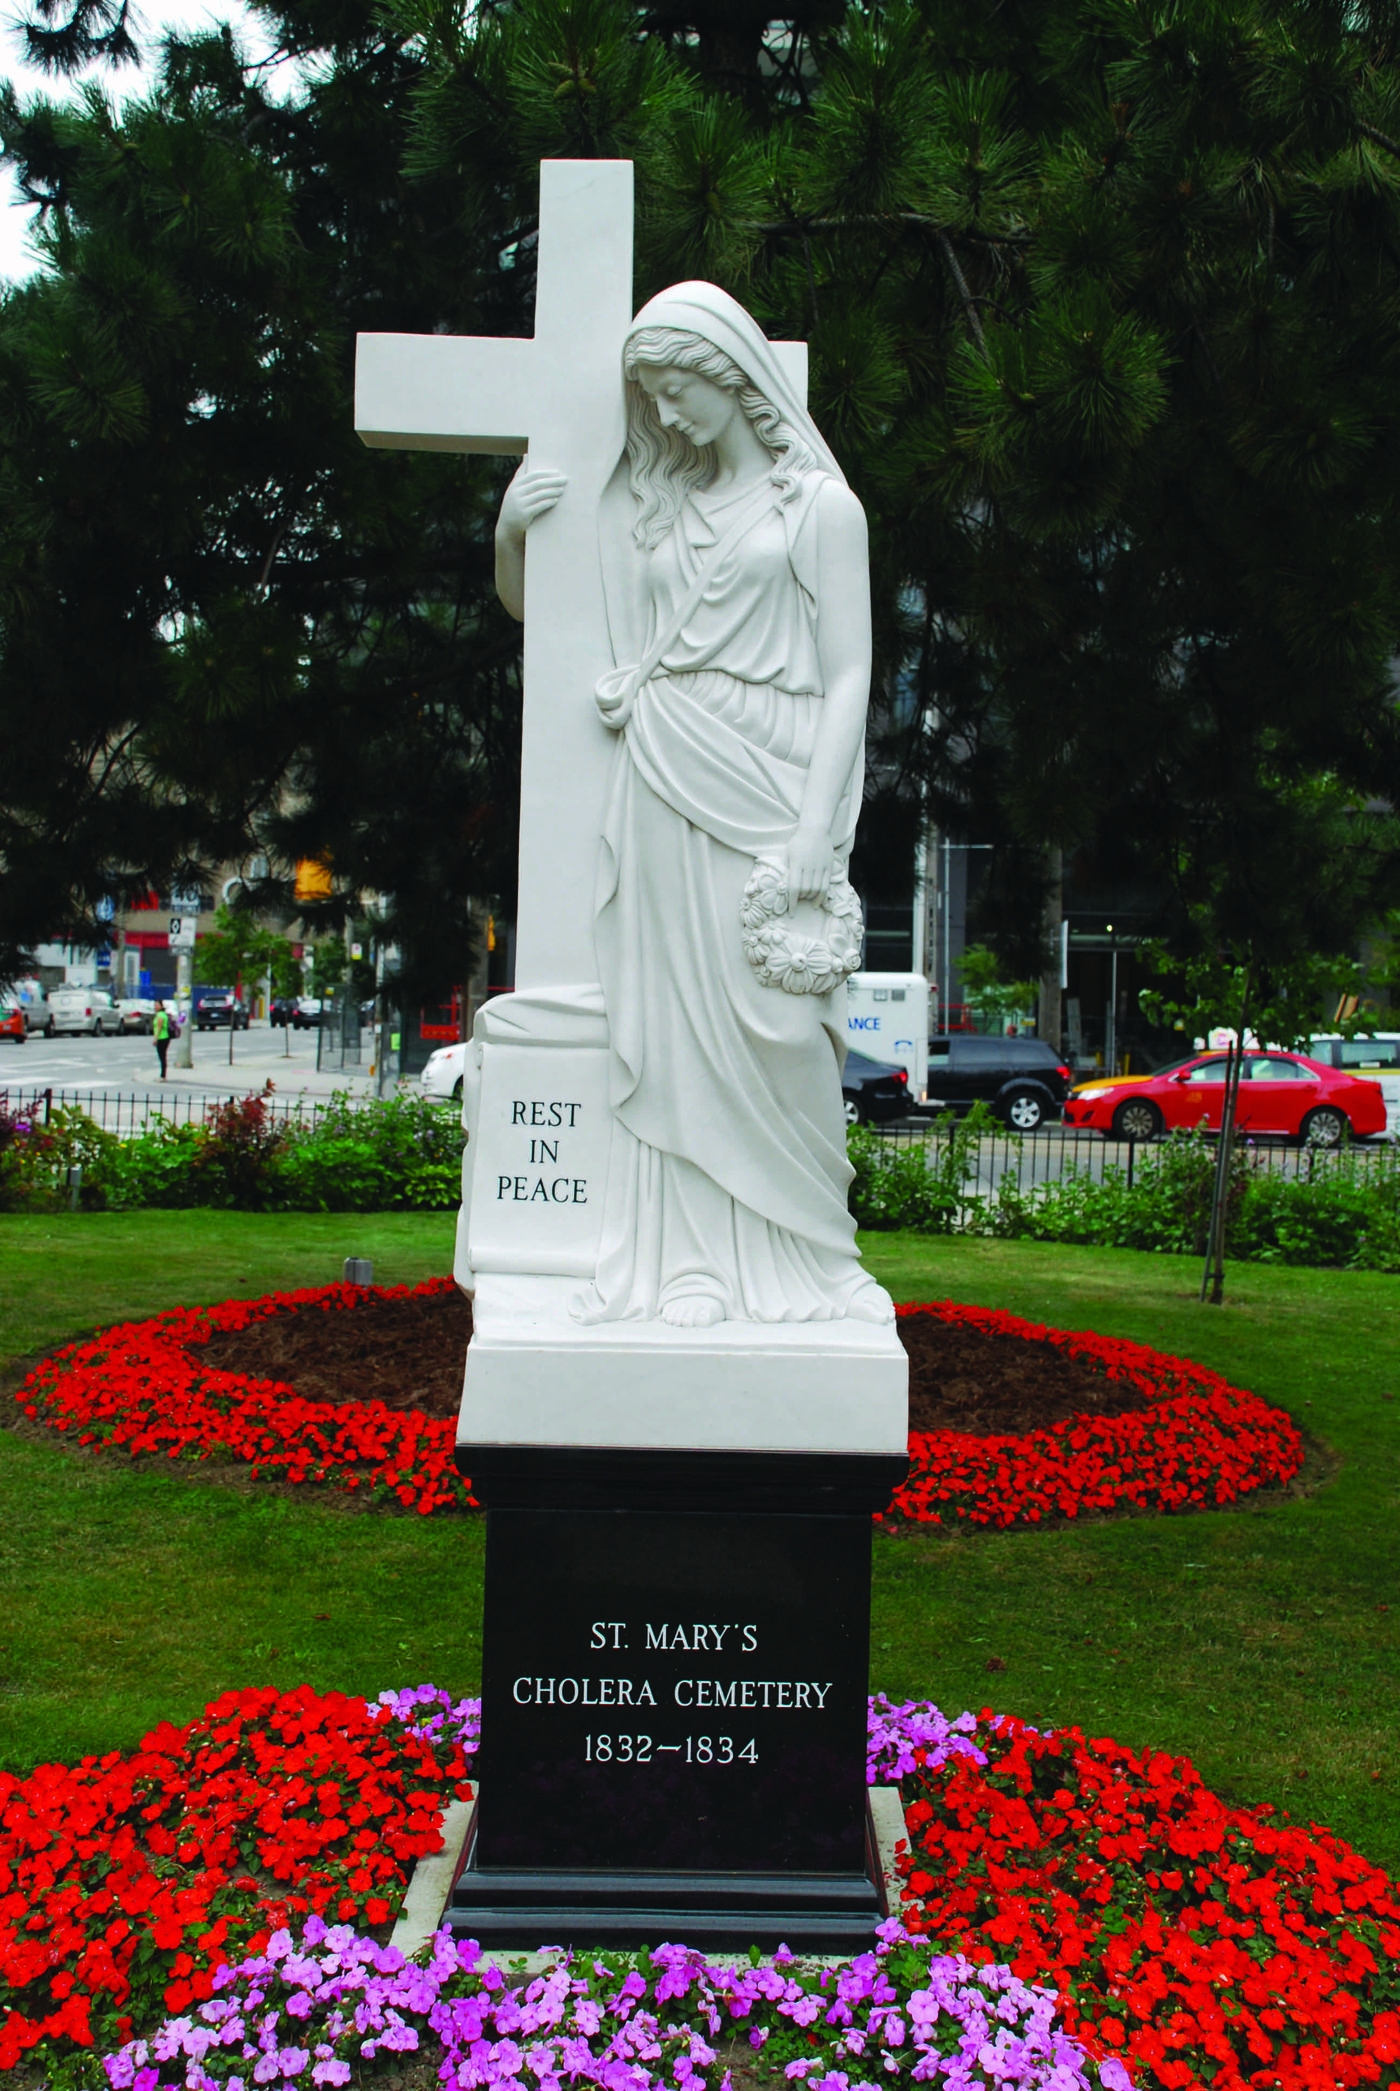 Toronto S Forgotten Cholera Victims Honoured With Monument